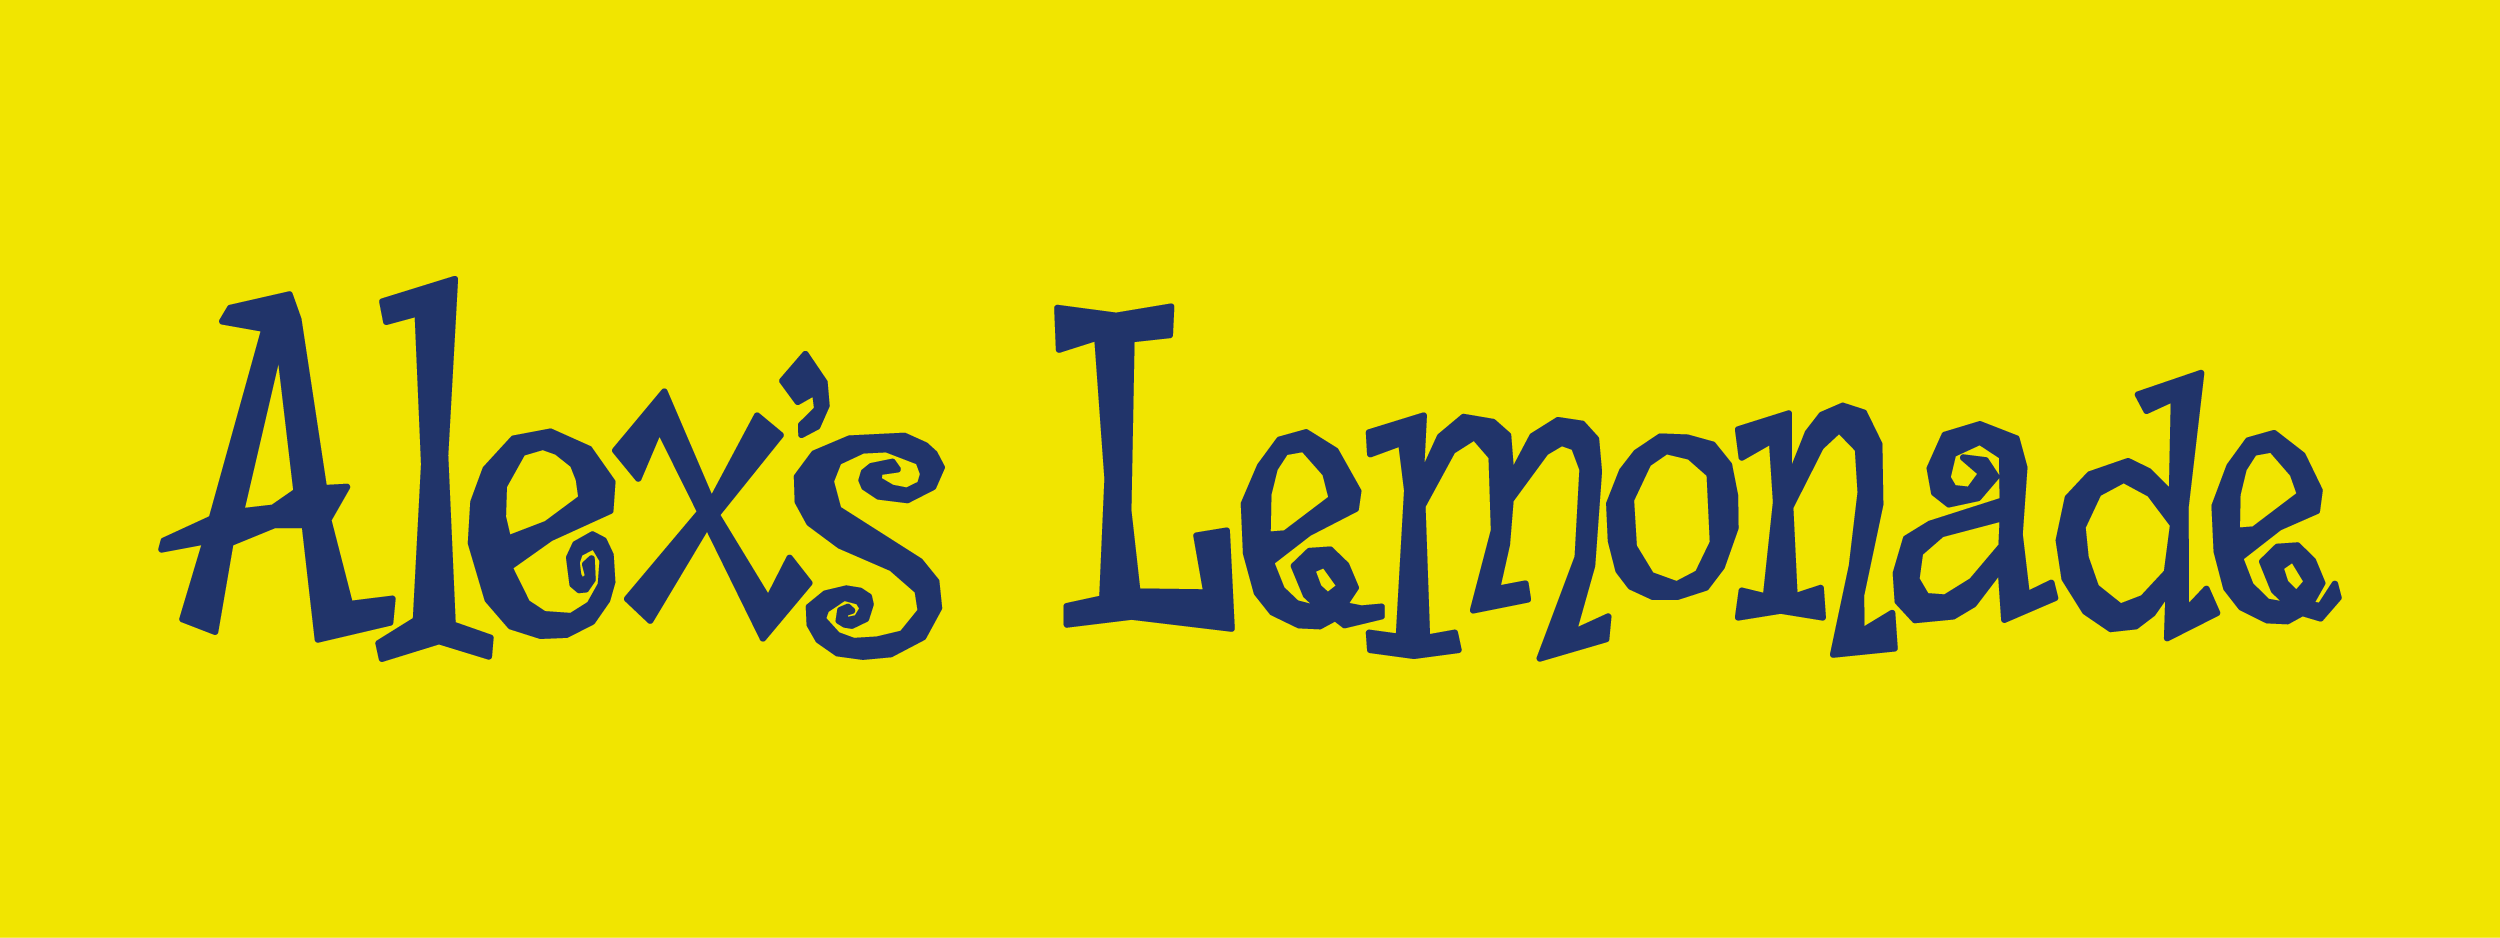 Alex's Lemonade